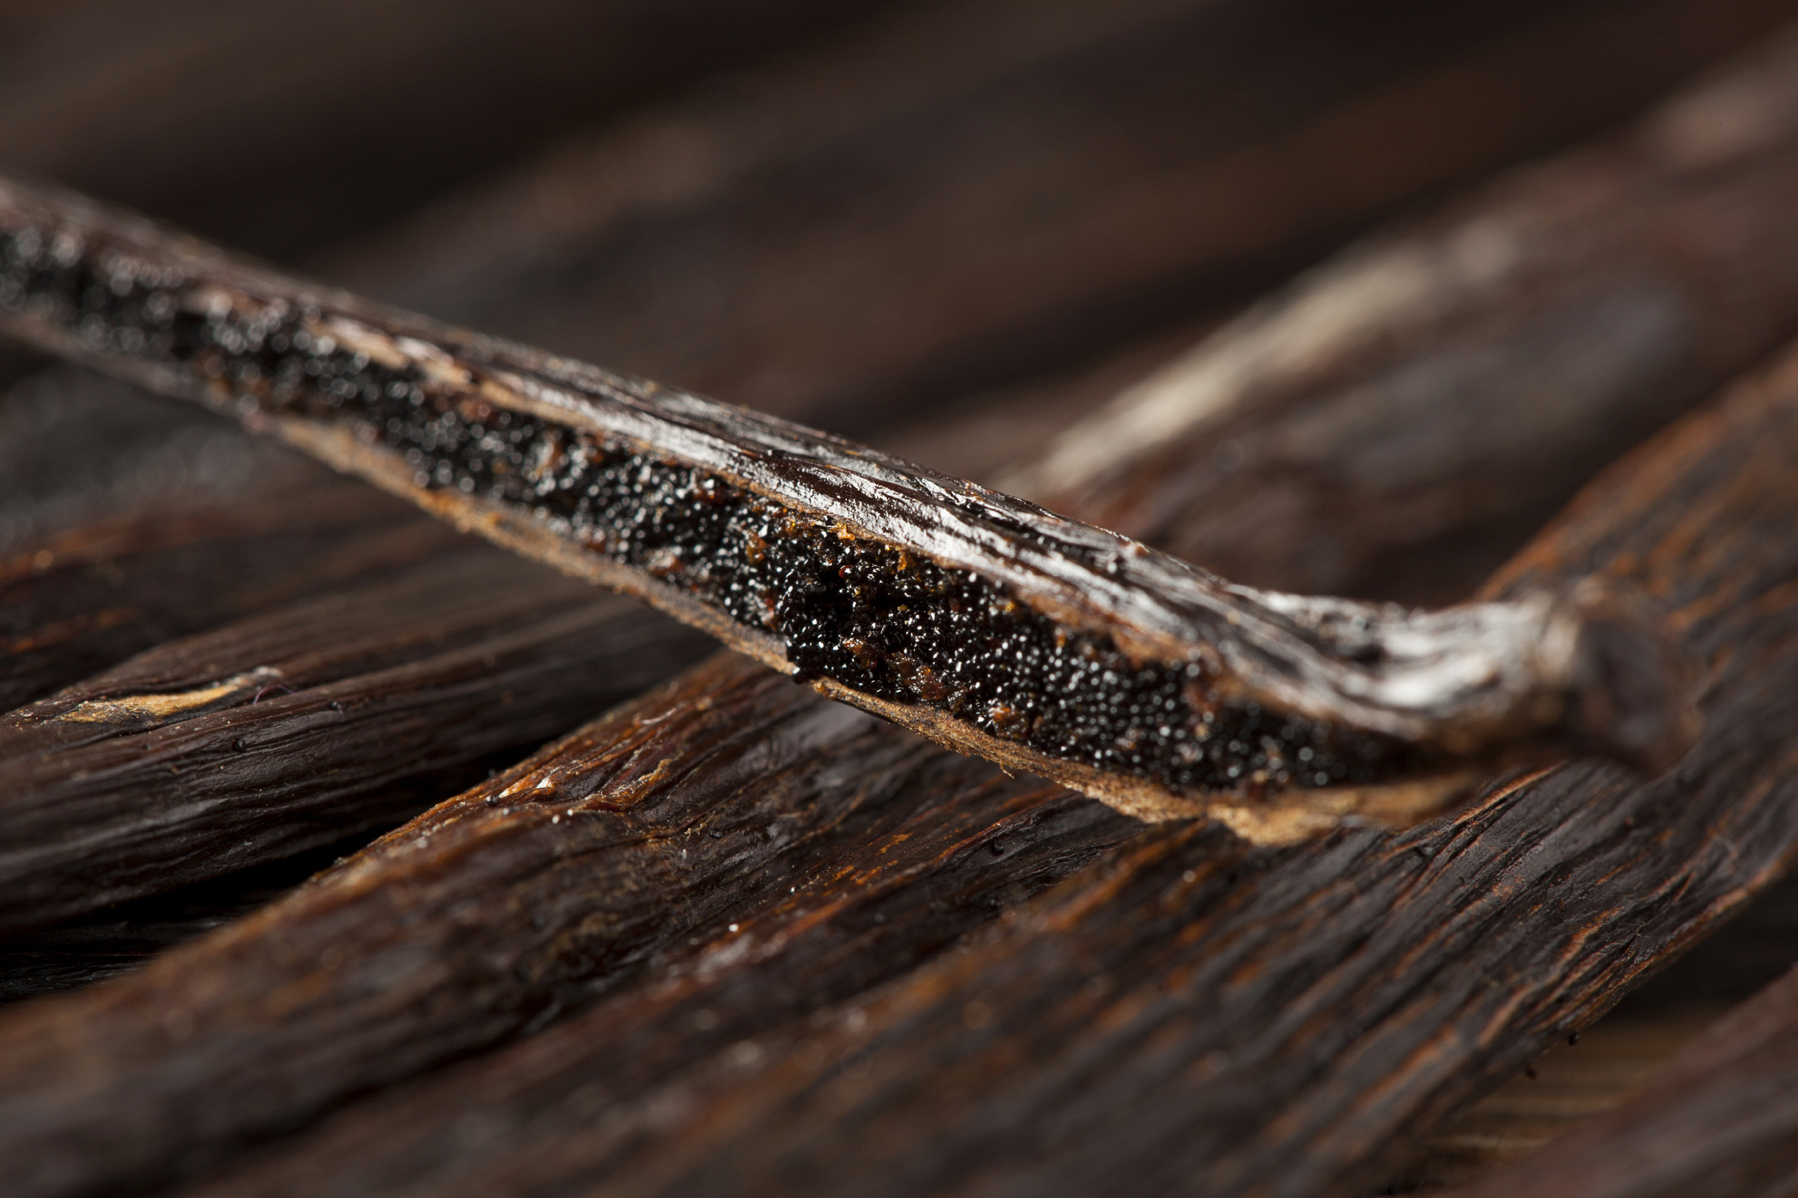 The vanilla bean, along with cacao, originated in the Americas and is now cultivated in several countries around the world. Here, the seeds inside the pod are shown. Photo: Brent Hofacker/iStockphoto